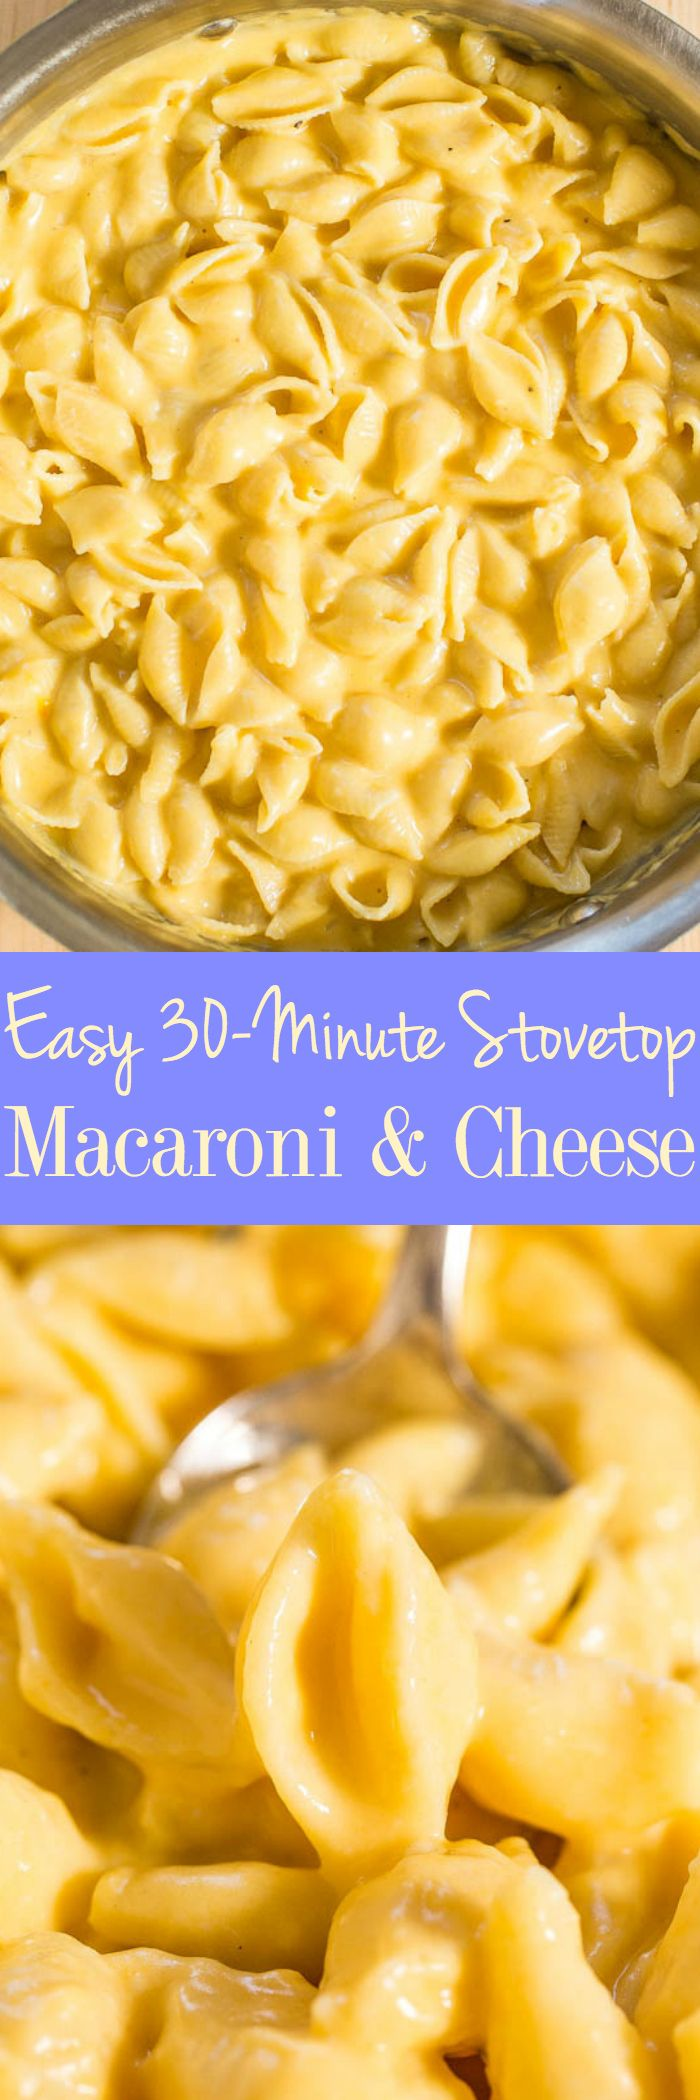 how to make macaroni cheese Go for elbow macaroni given the various rates at which different pastas cook, making macaroni and cheese in the slow cooker can be a slightly tricky affair.